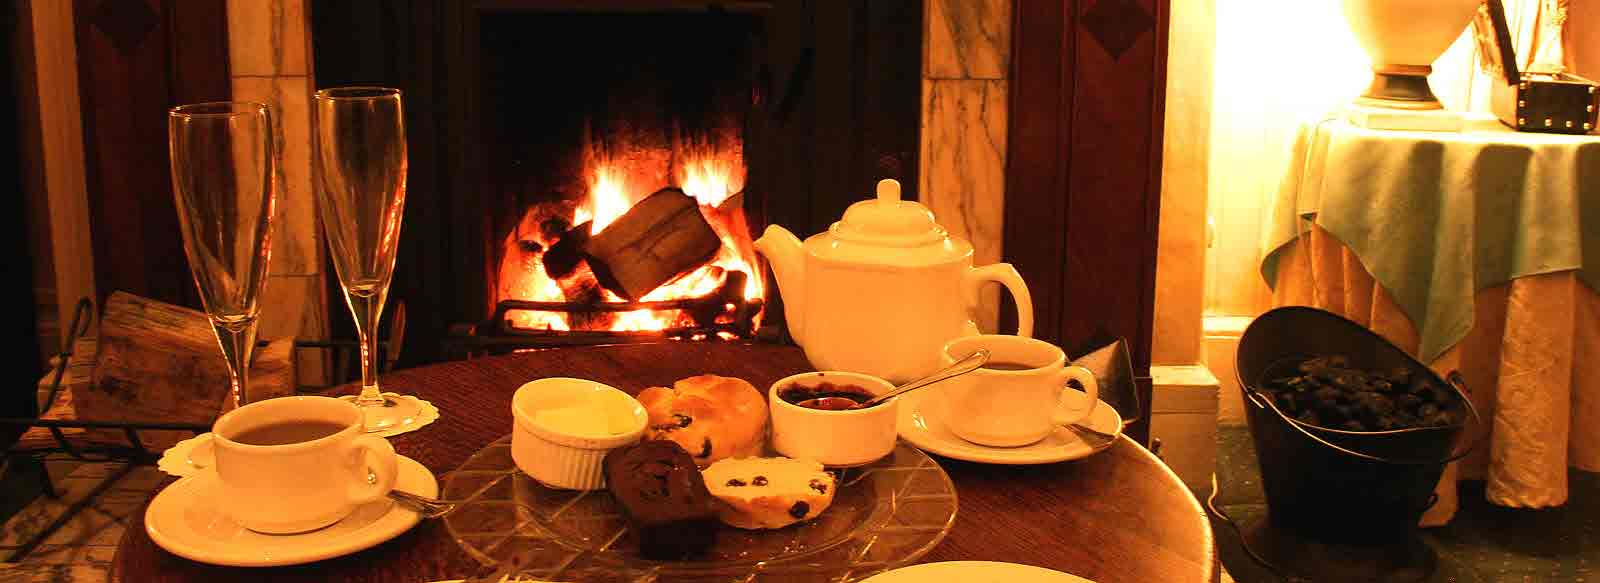 tea by hotel fire